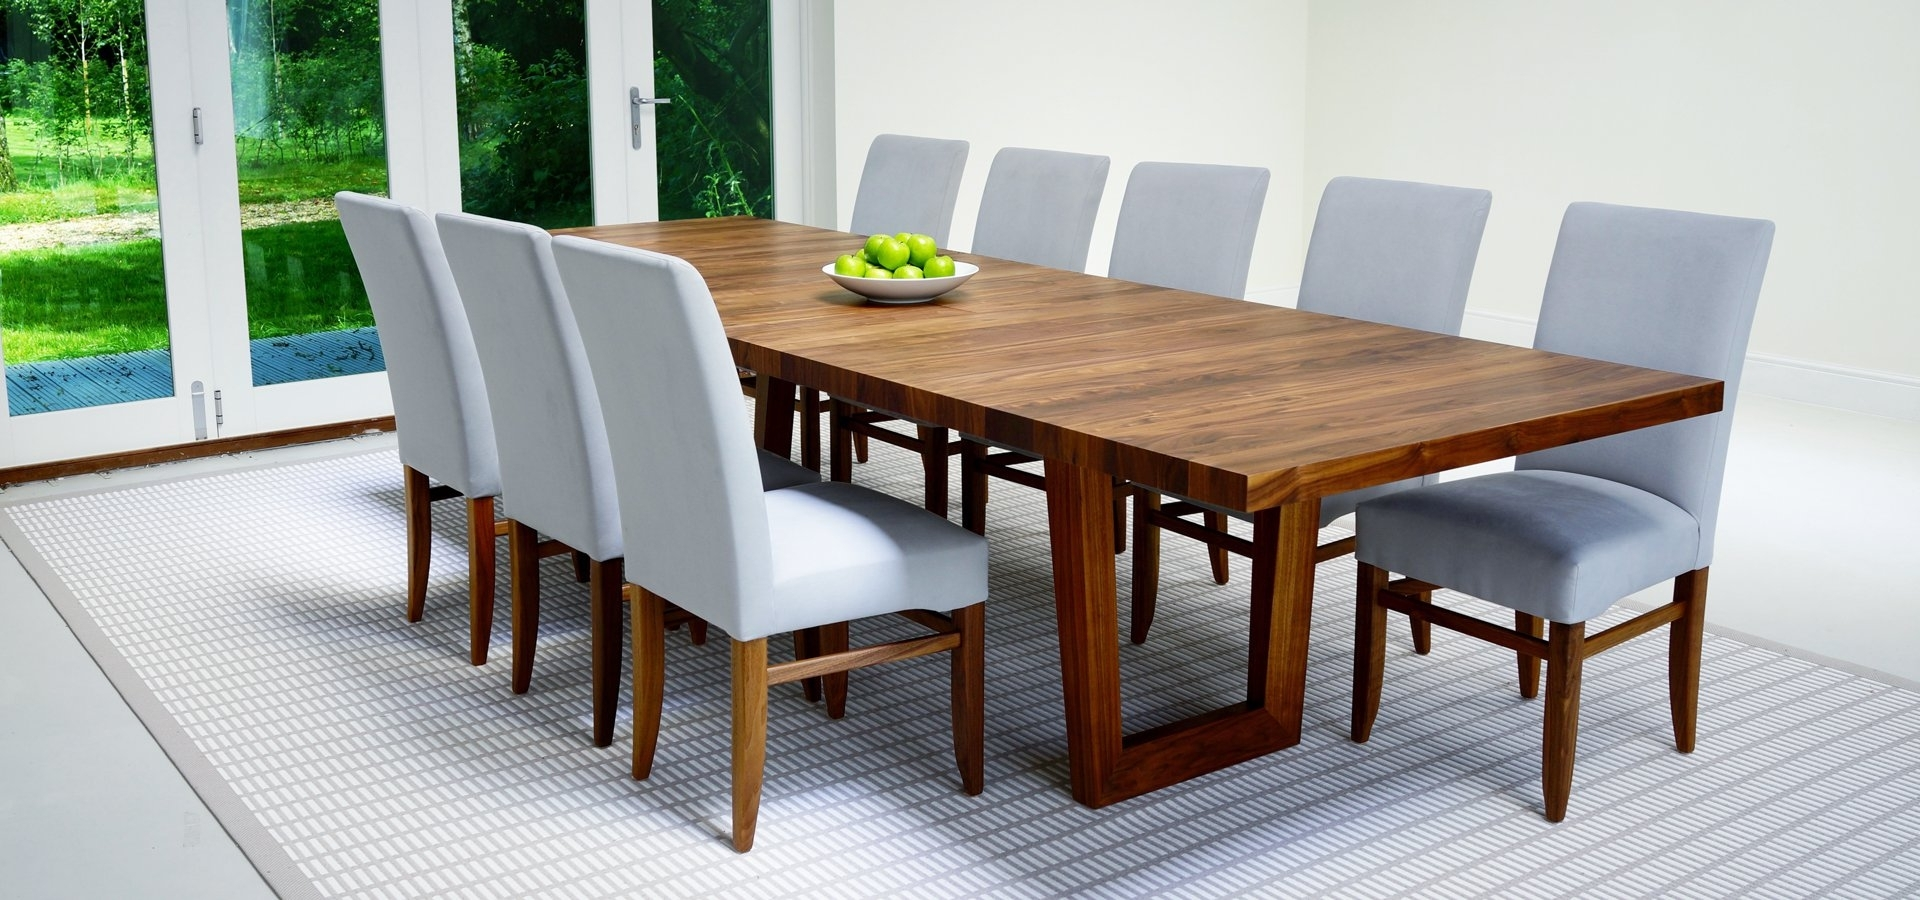 2018 Dark Wood Extending Dining Tables In Contemporary Dining Tables & Furnitureberrydesign (View 12 of 25)